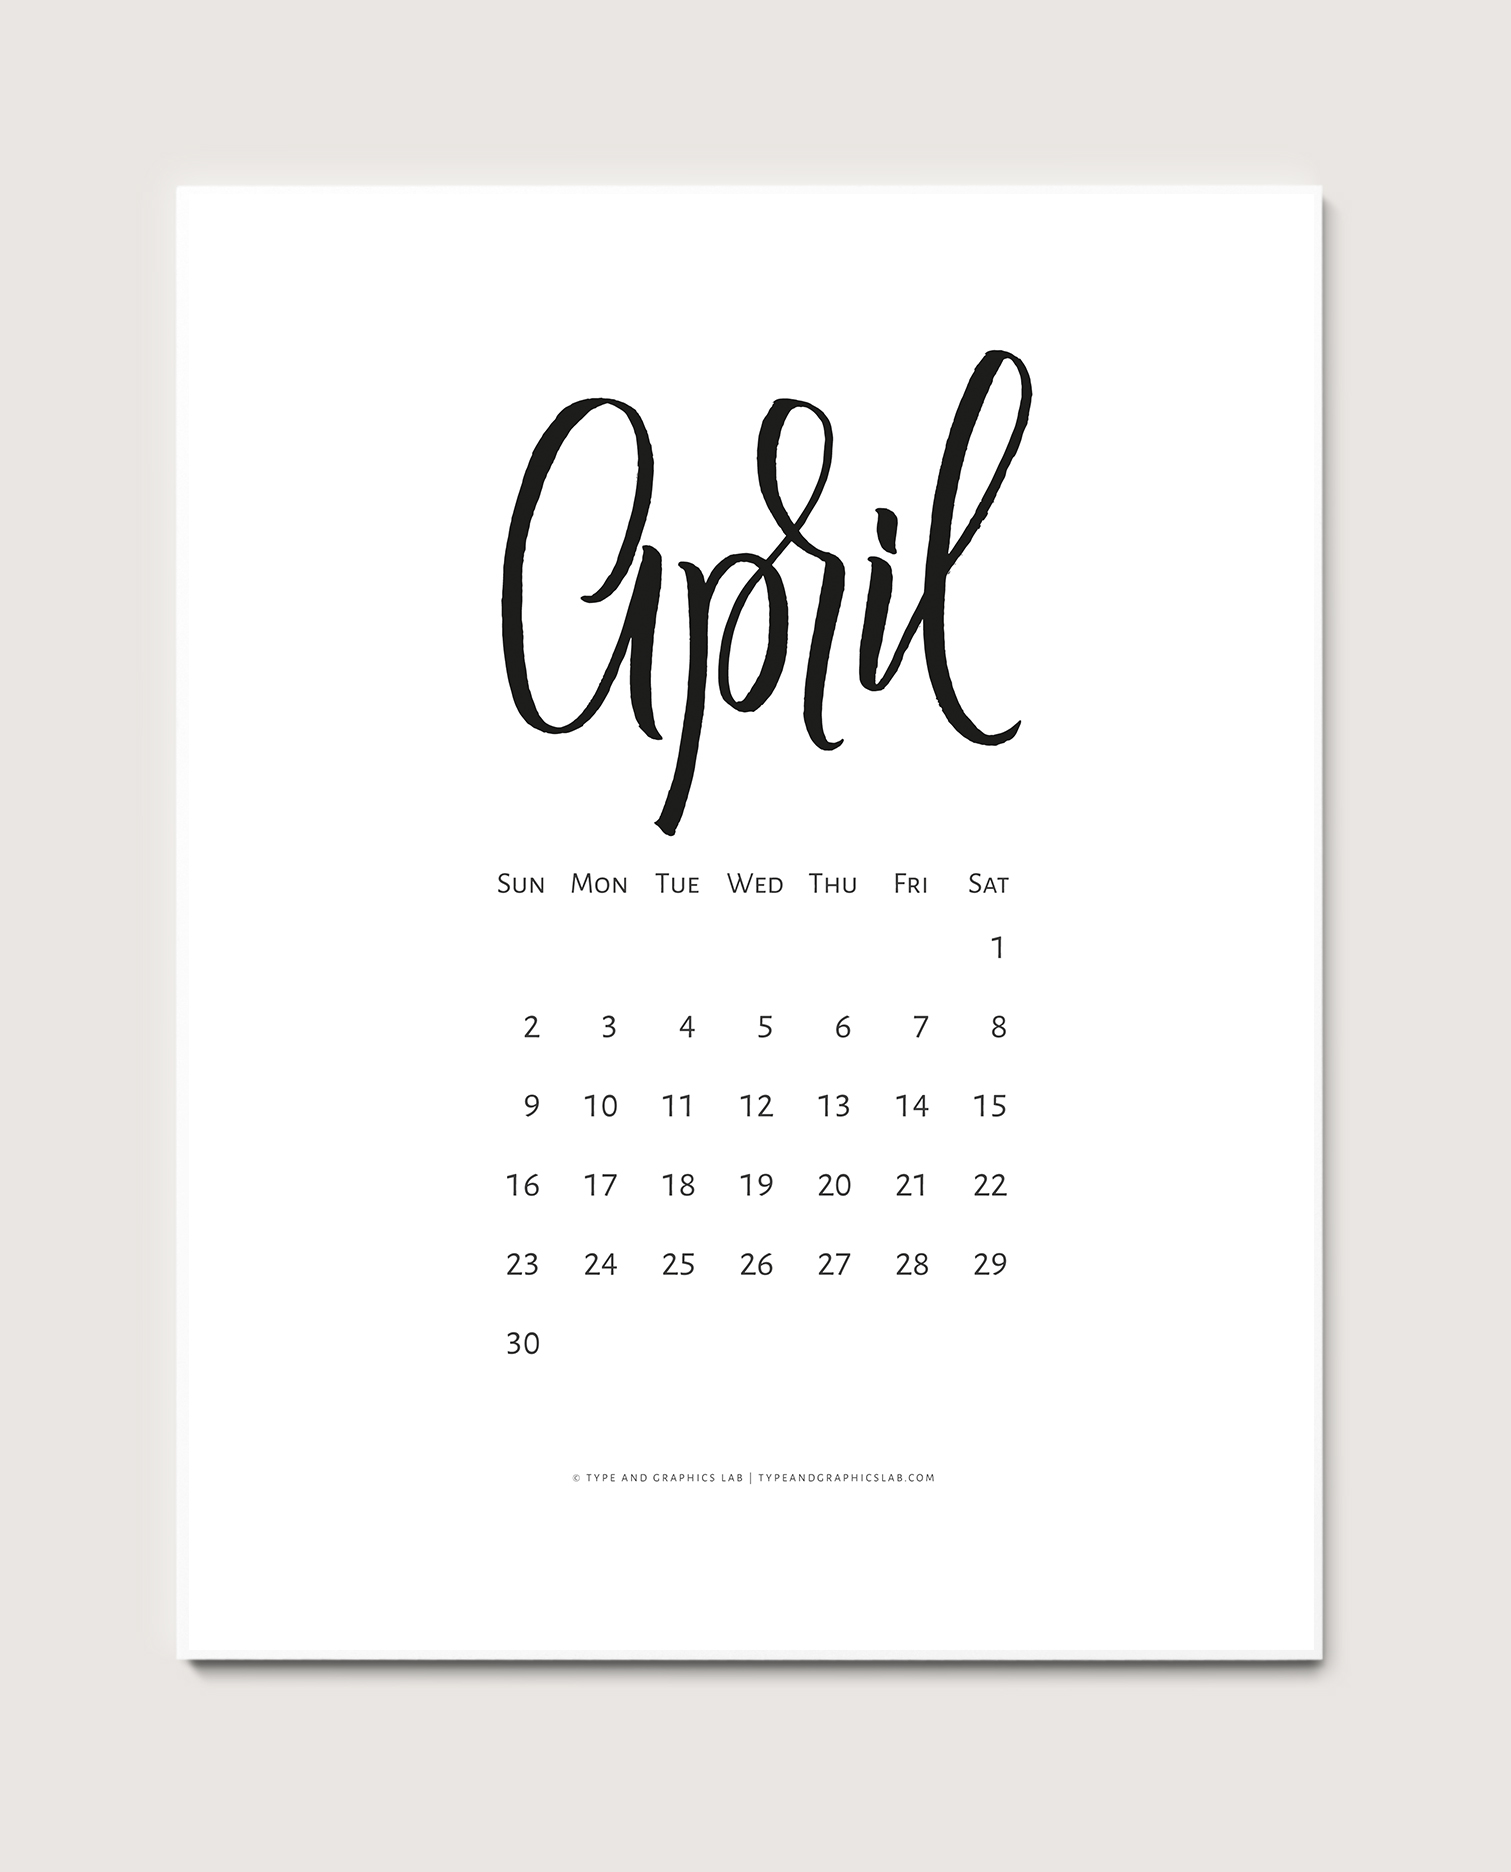 Download a free printable calendar for April 2017 |©typeandgraphicslab.com | For personal use only